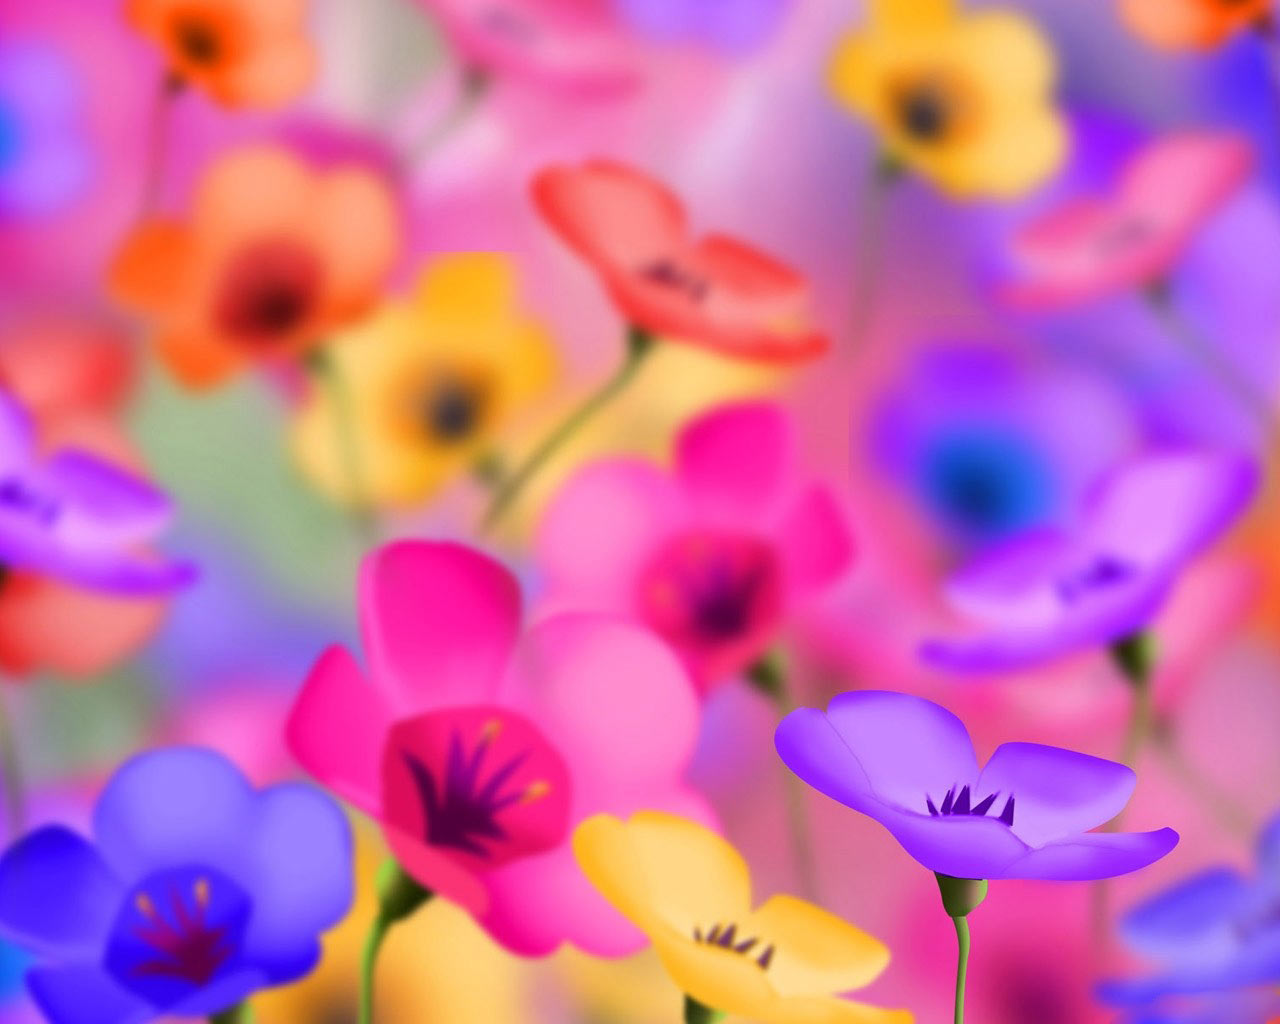 flowers for flower lovers.: Flowers background desktop wallpapers.